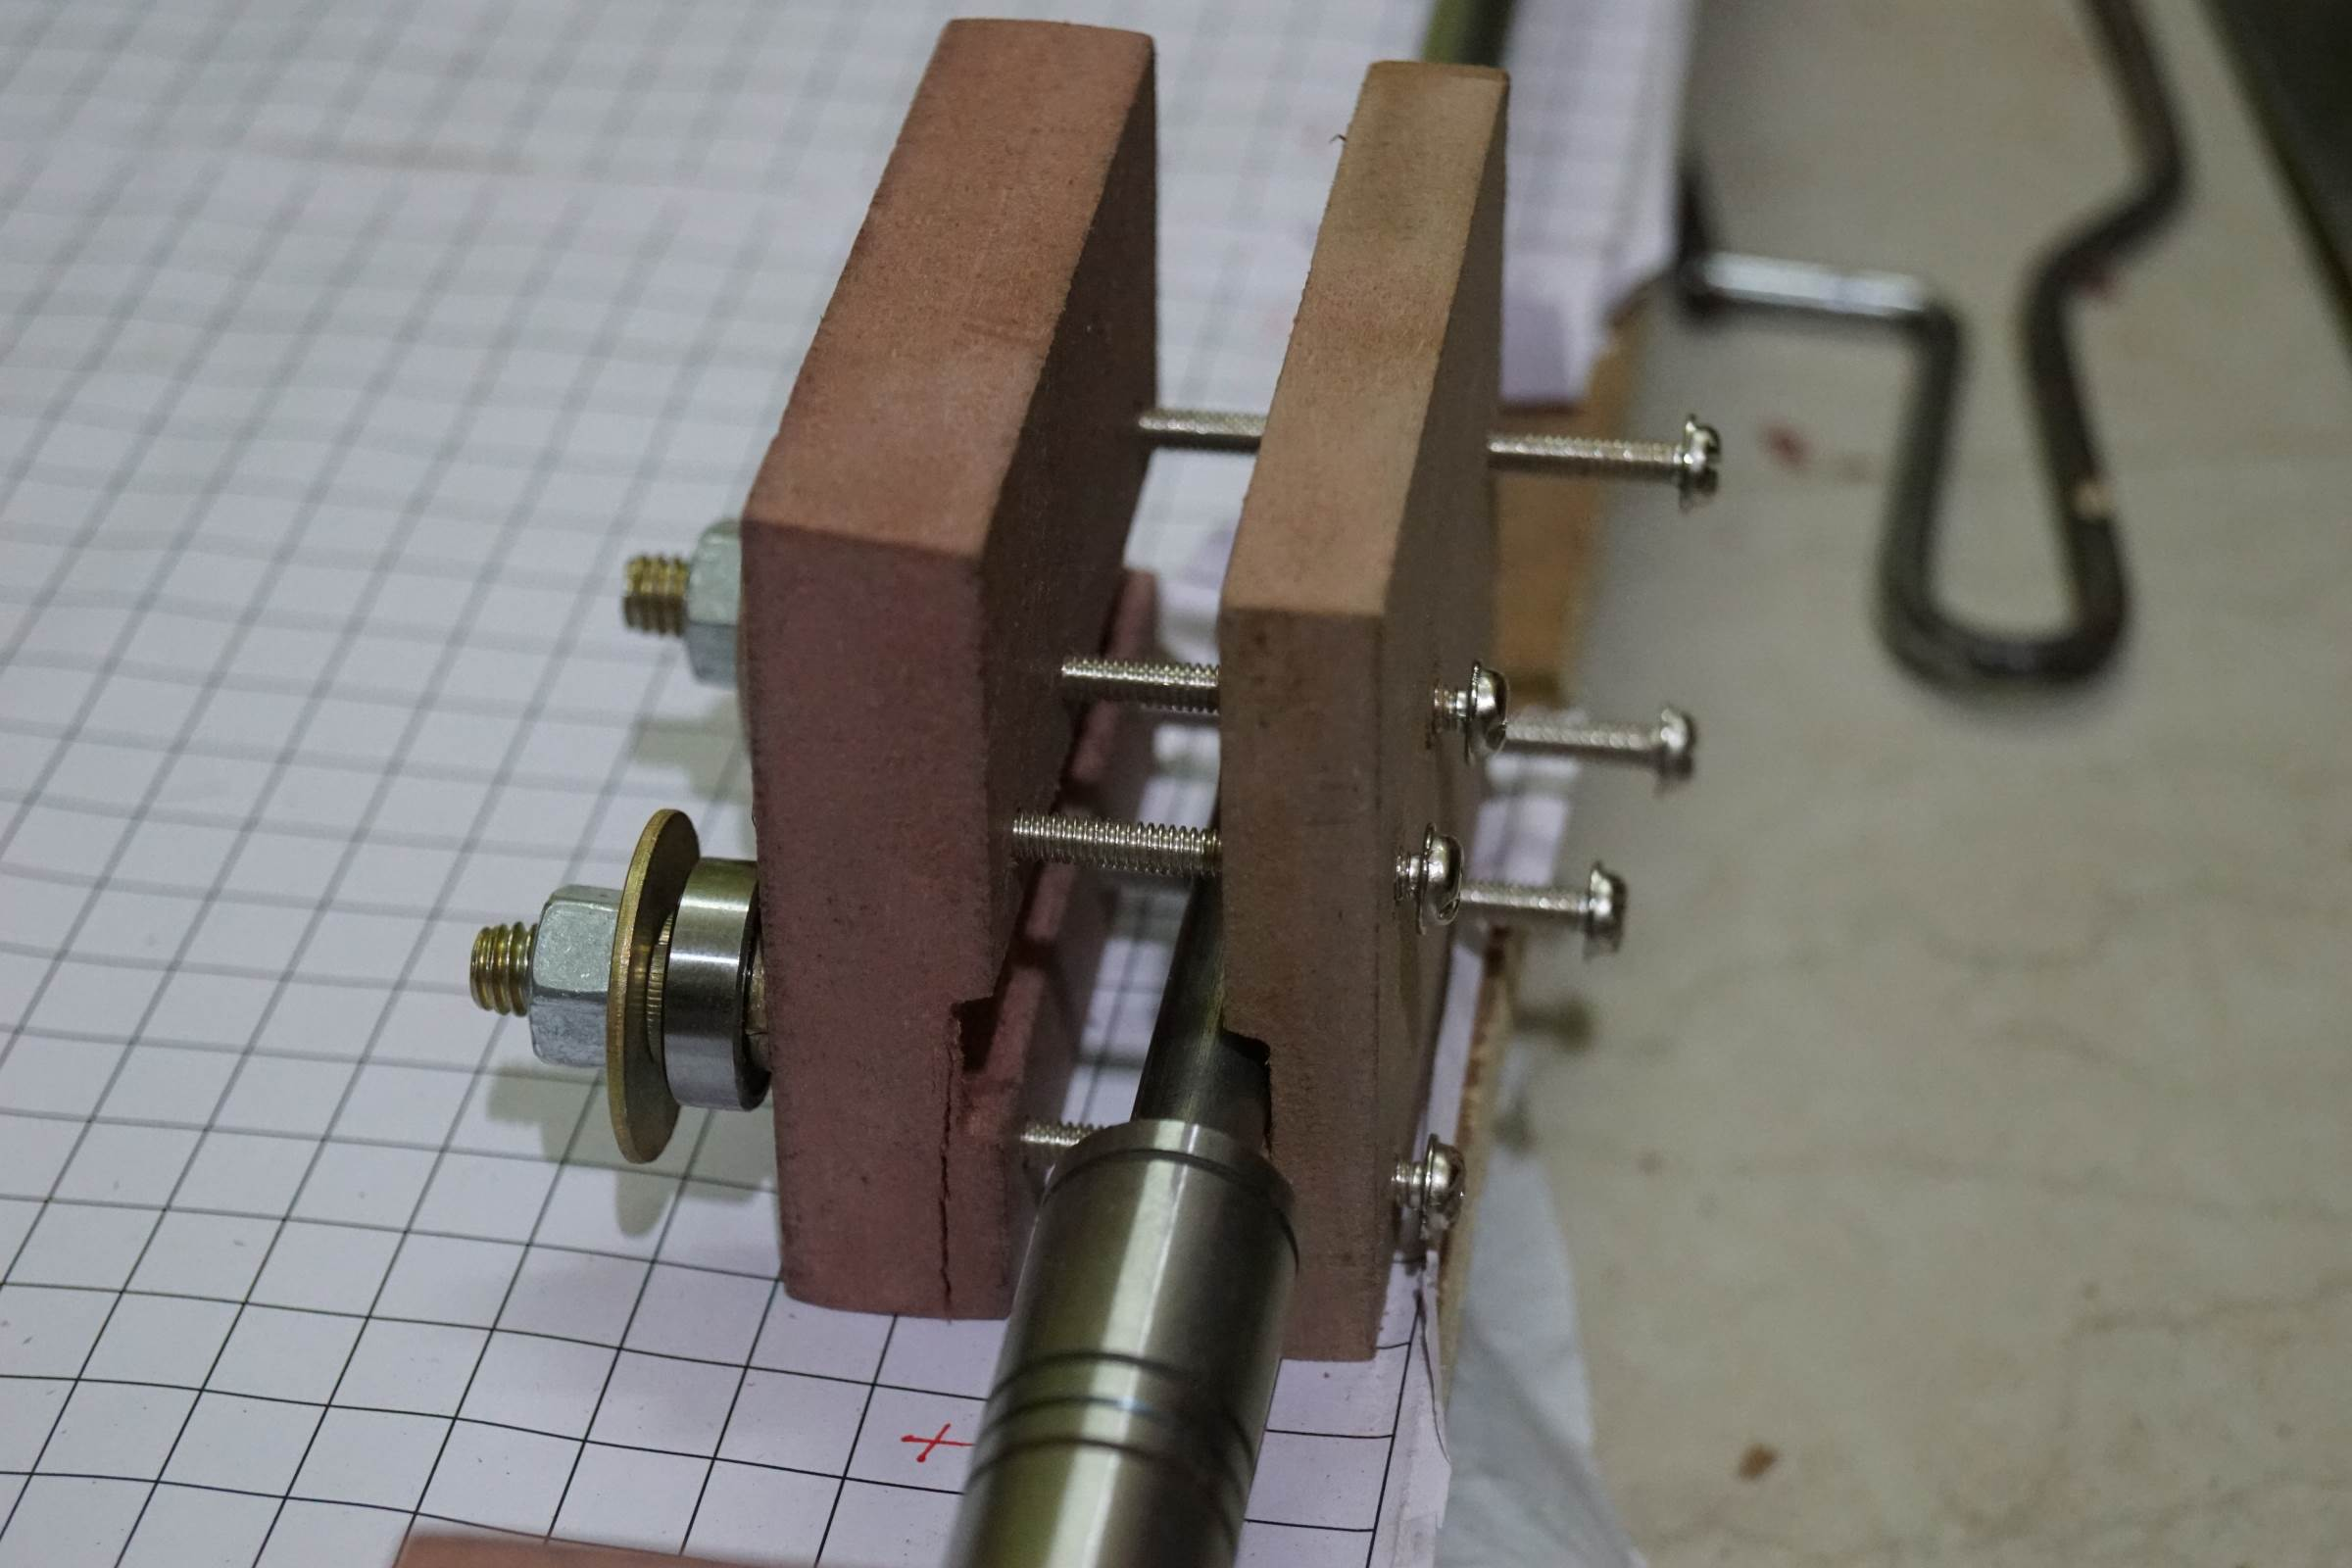 Assembling the X Axis End Holders